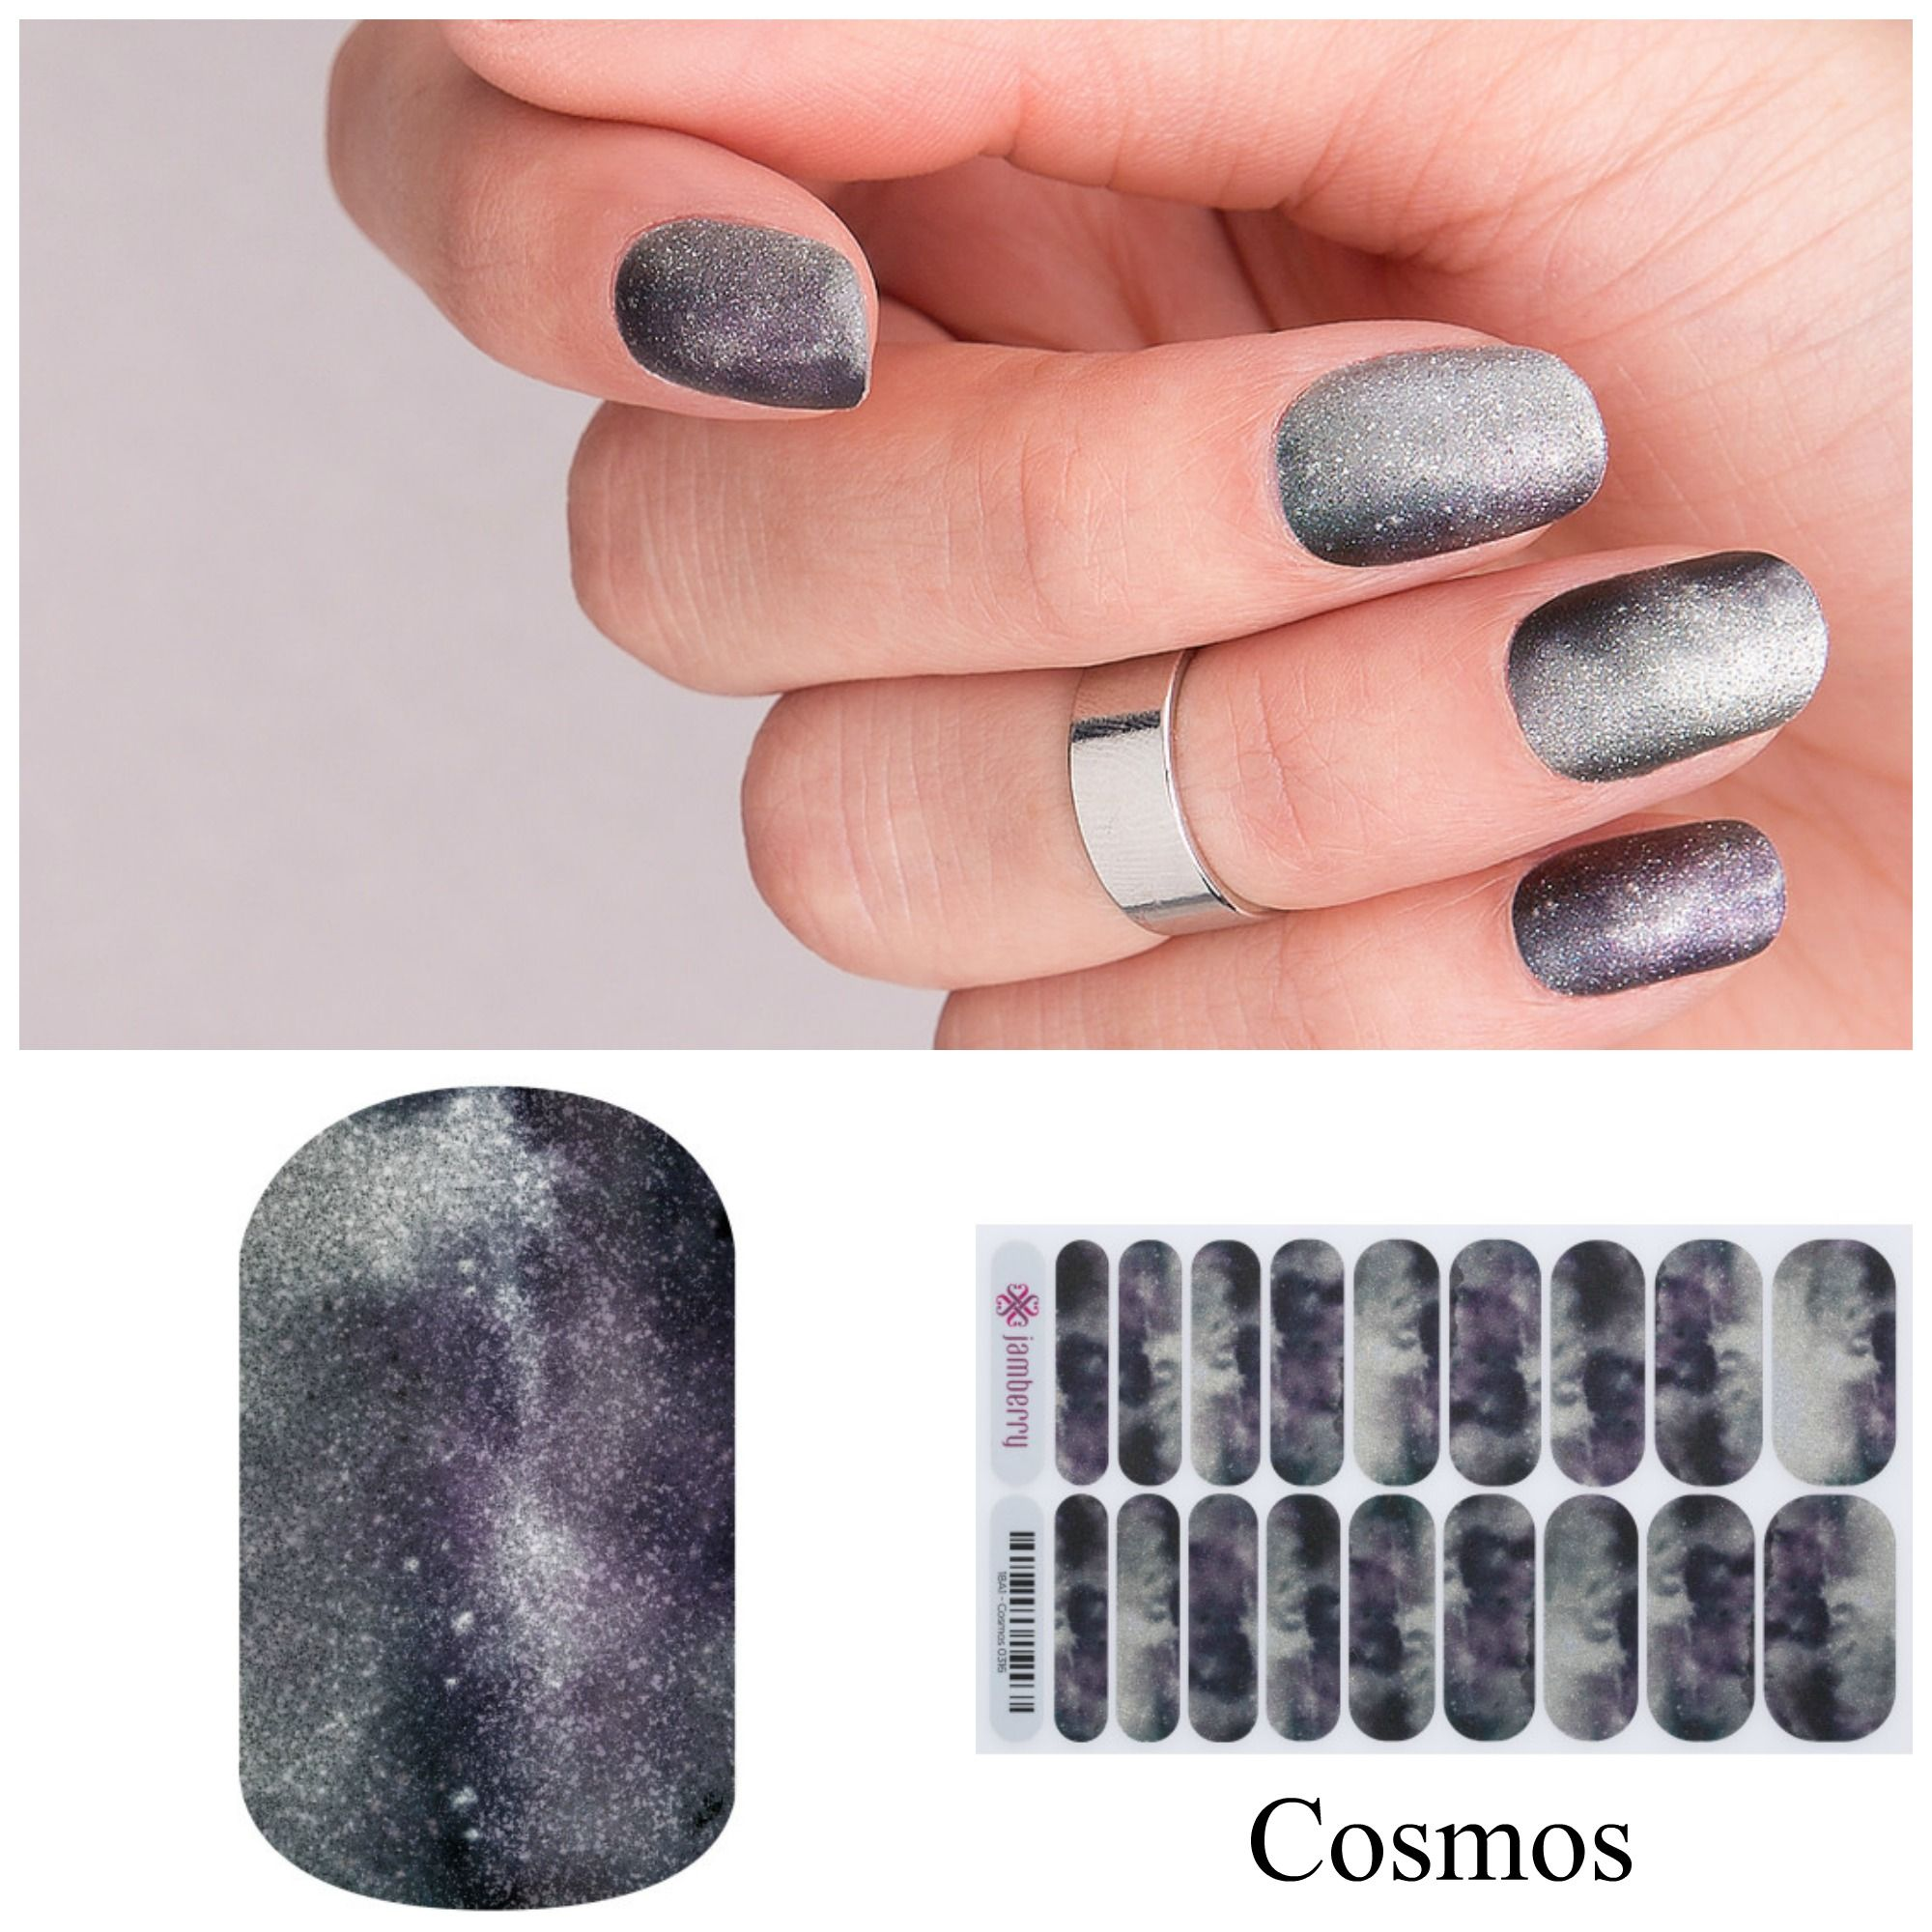 Pin by Baroness Violet von Mickelsburg on Jamberry Nails | Pinterest ...